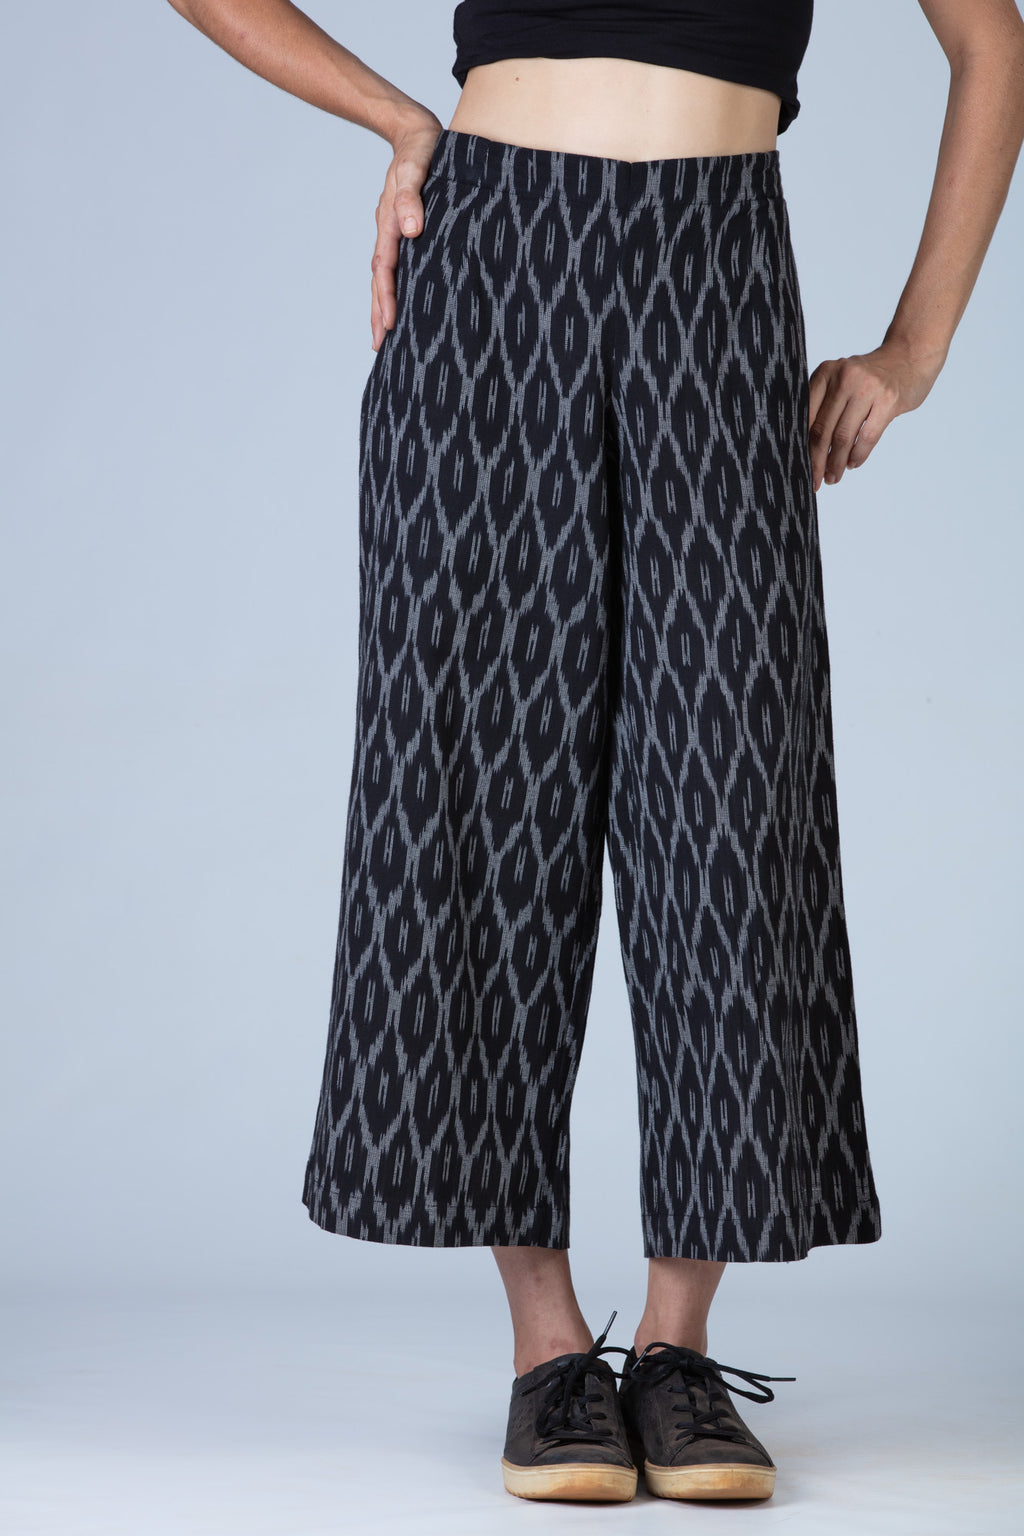 Black Ikat Women Pants